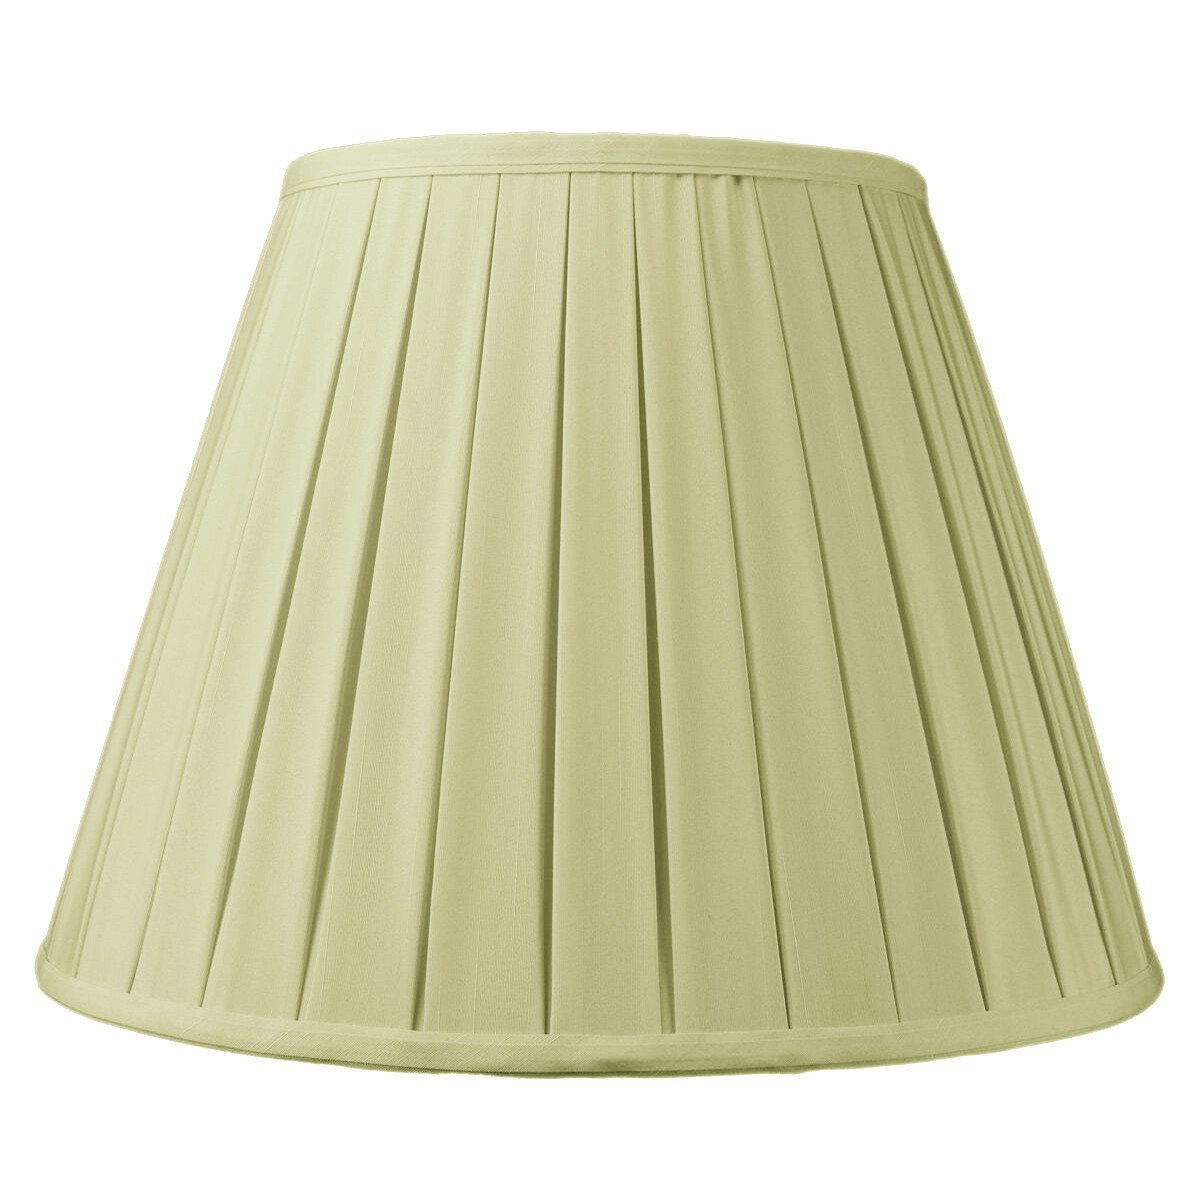 9x16x12 Empire Box Pleat Lampshade Eggshell with Brass Spider fitter By Home Concept - Perfect for table and floor lamps - Large, Egg Shell